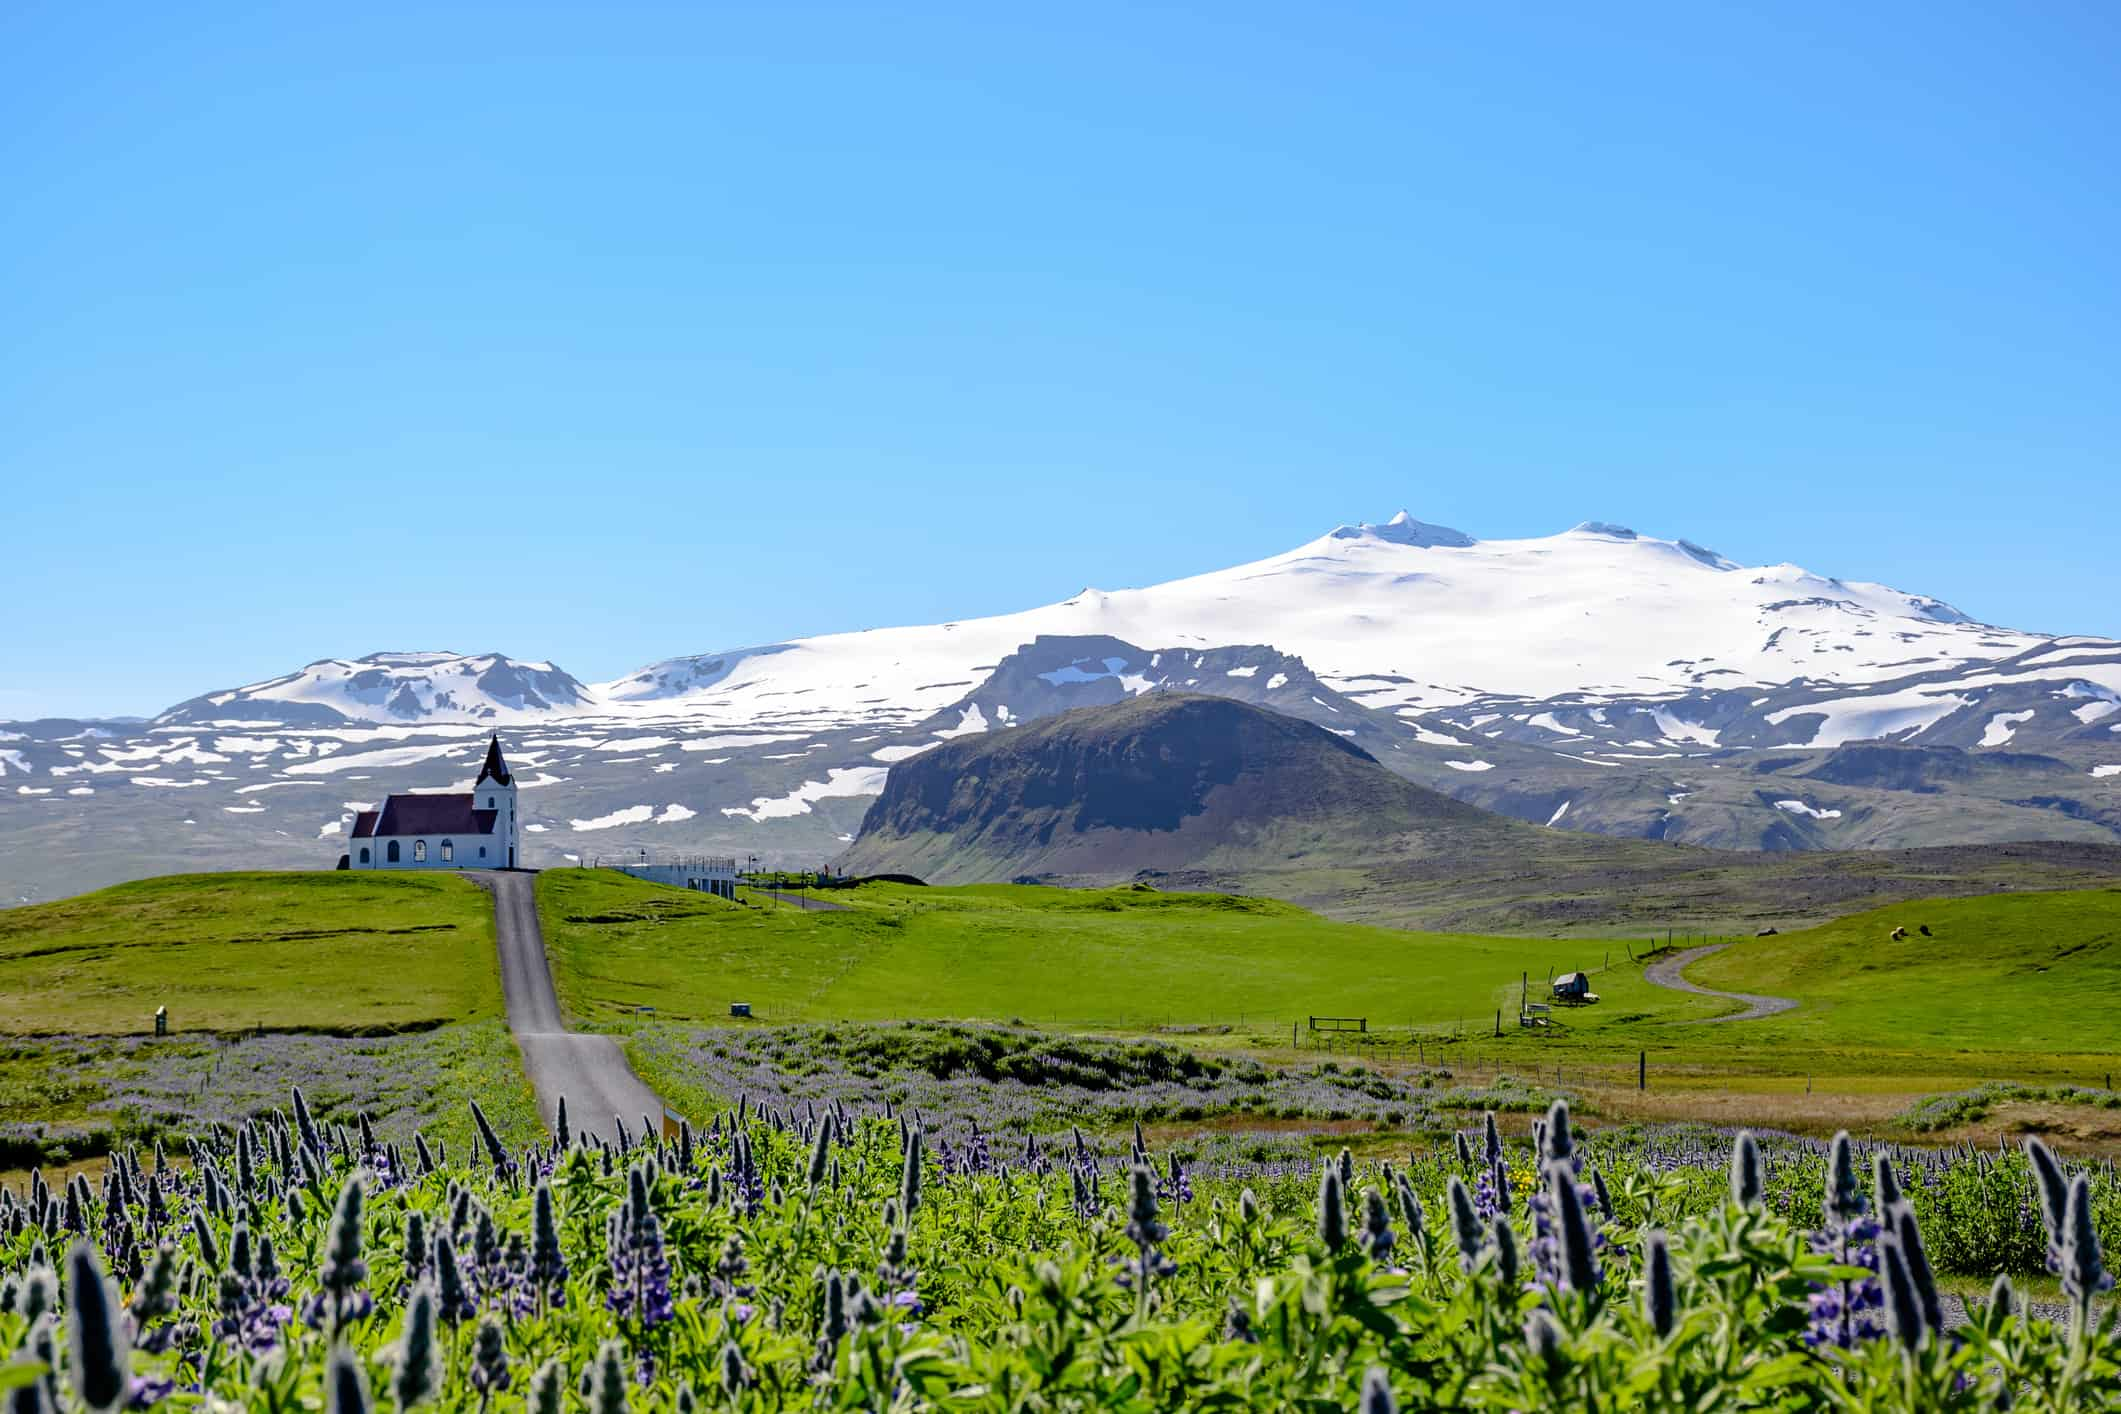 Church near Hellisandur, next to Snaefellsjokull, in Iceland. Lavender field and blue and clear day.